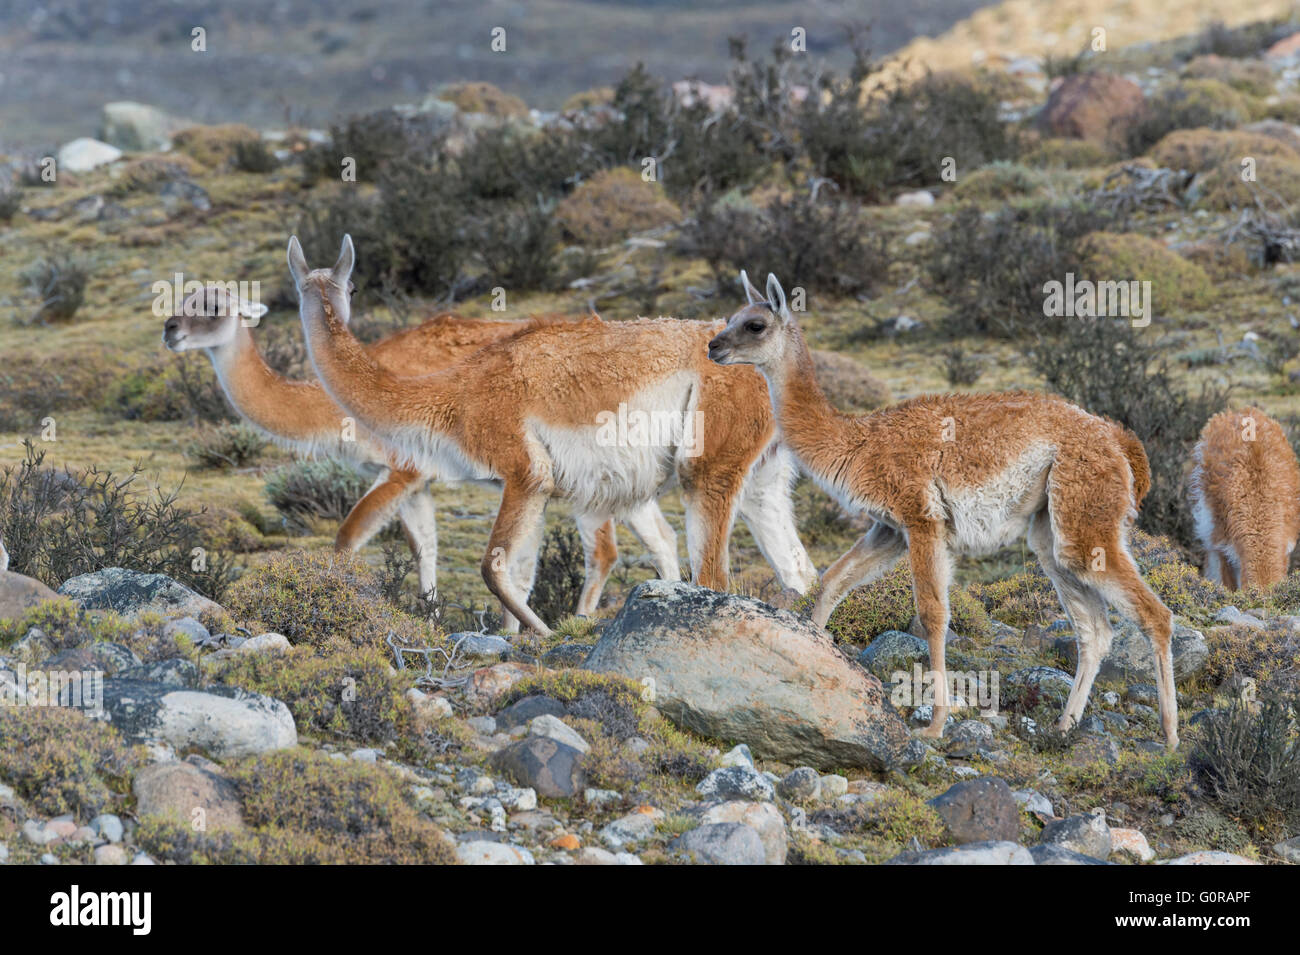 Group of Guanacos (Lama guanicoe) in the steppe, Torres del Paine National Park, Chilean Patagonia, Chile - Stock Image